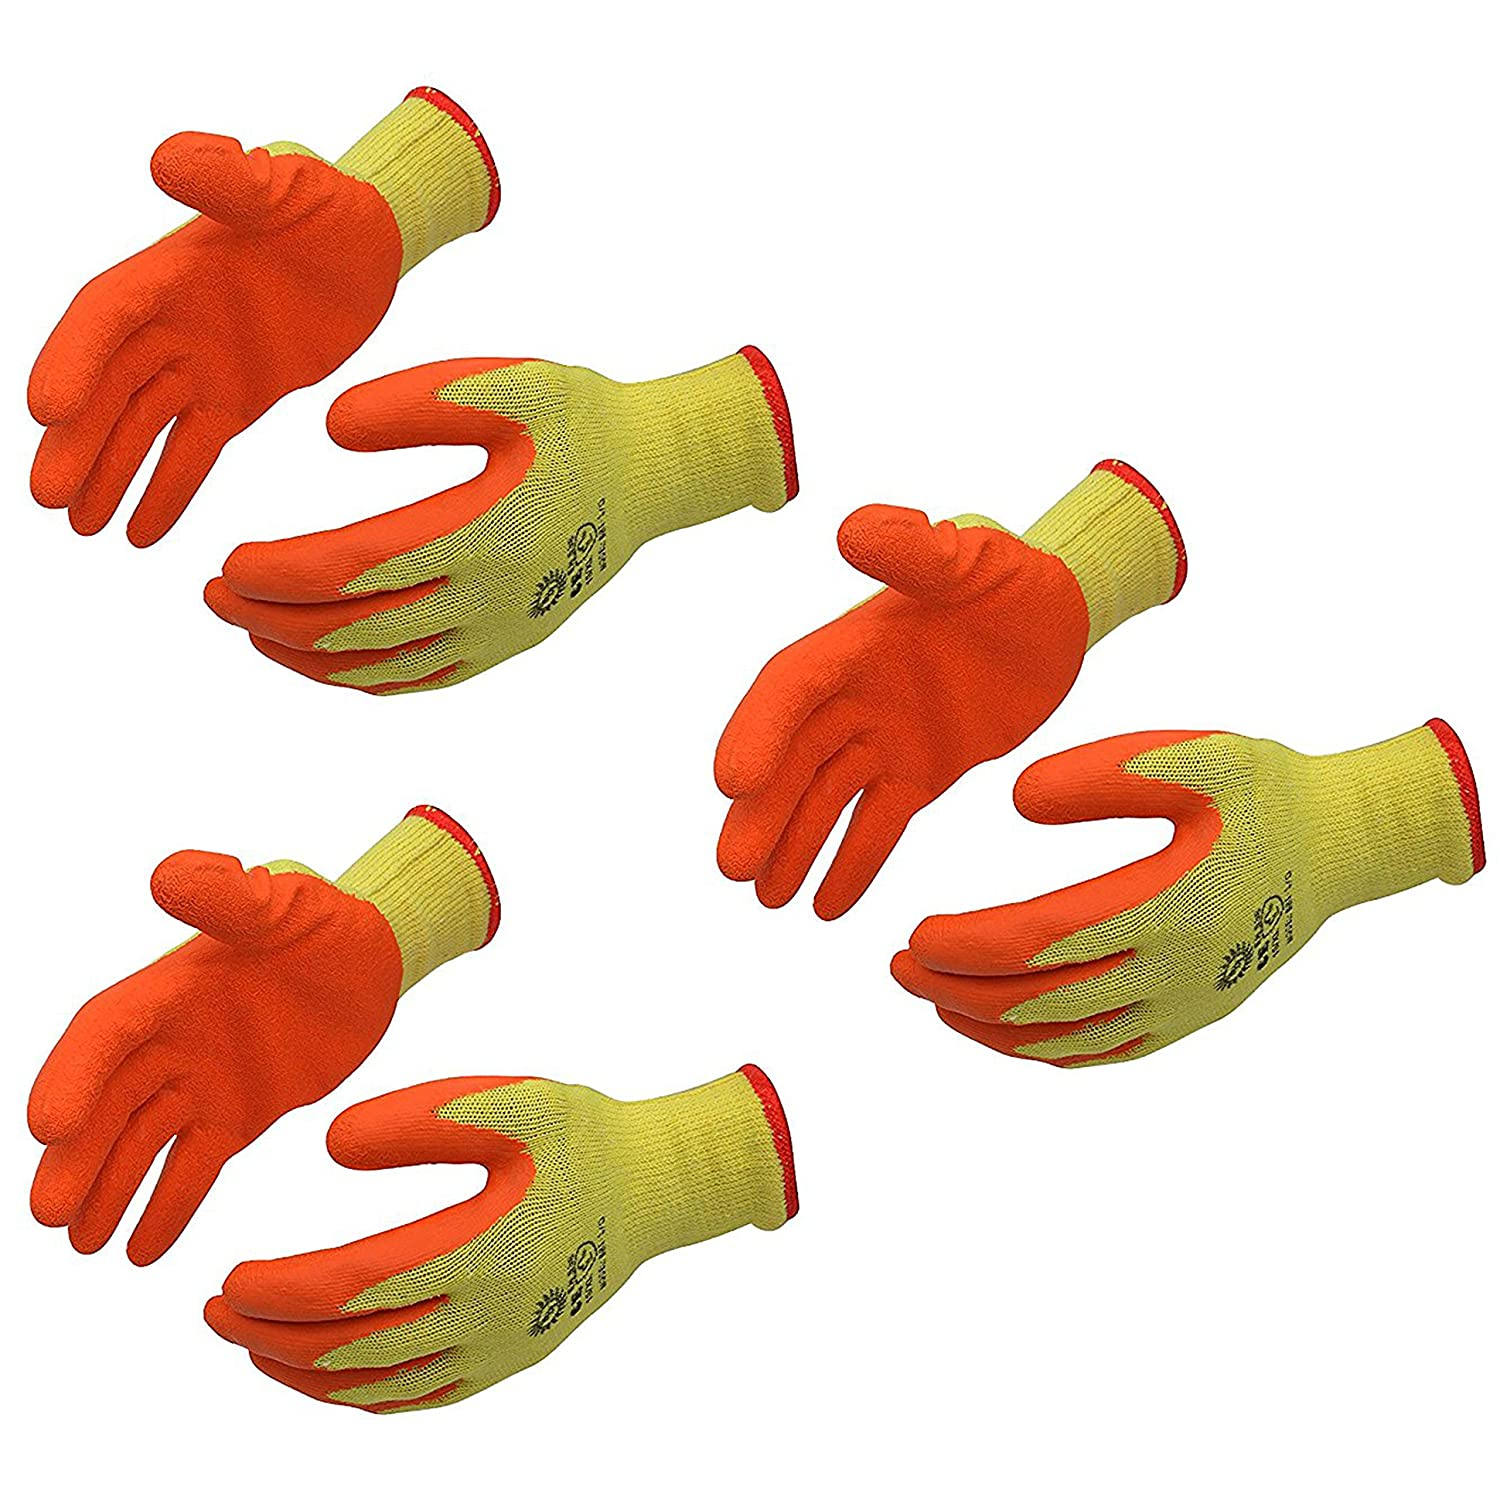 Klaxon Cotton Safety Hand Gloves (Yellow, Set of 6)